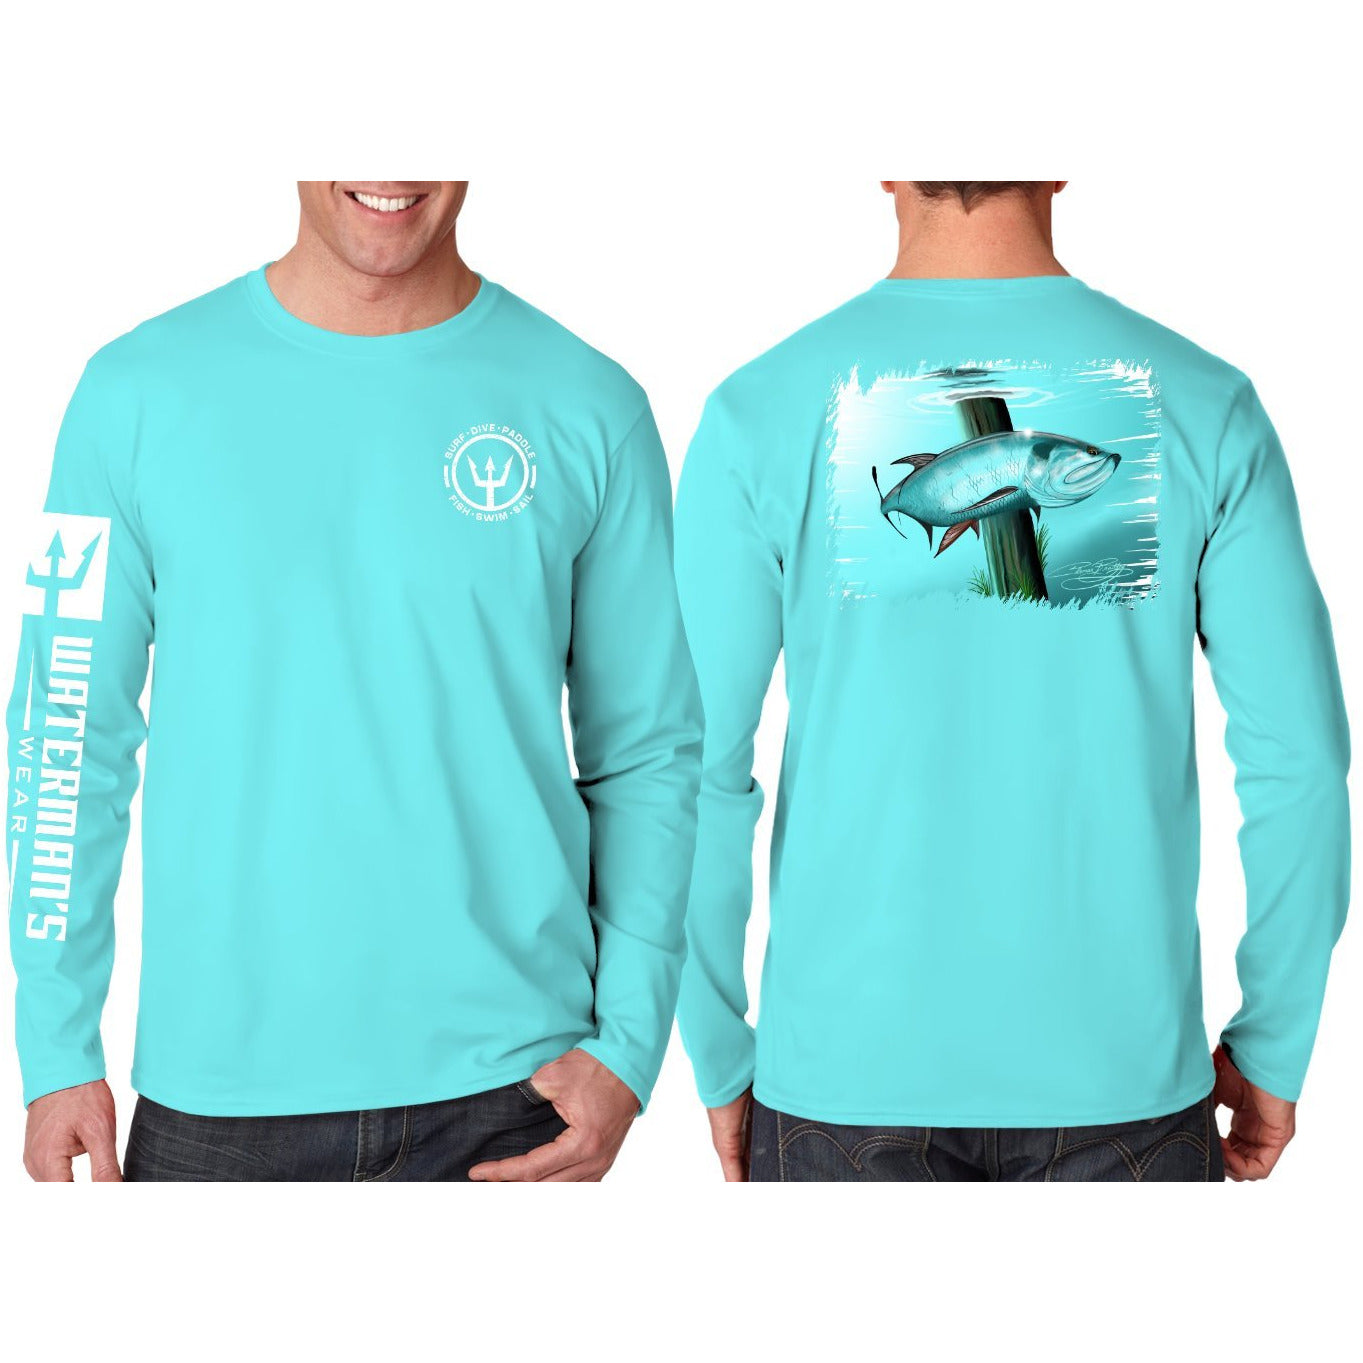 Cruisin' Tarpon Long Sleeve UPF50 Fishing Shirt by Coleman Bradley